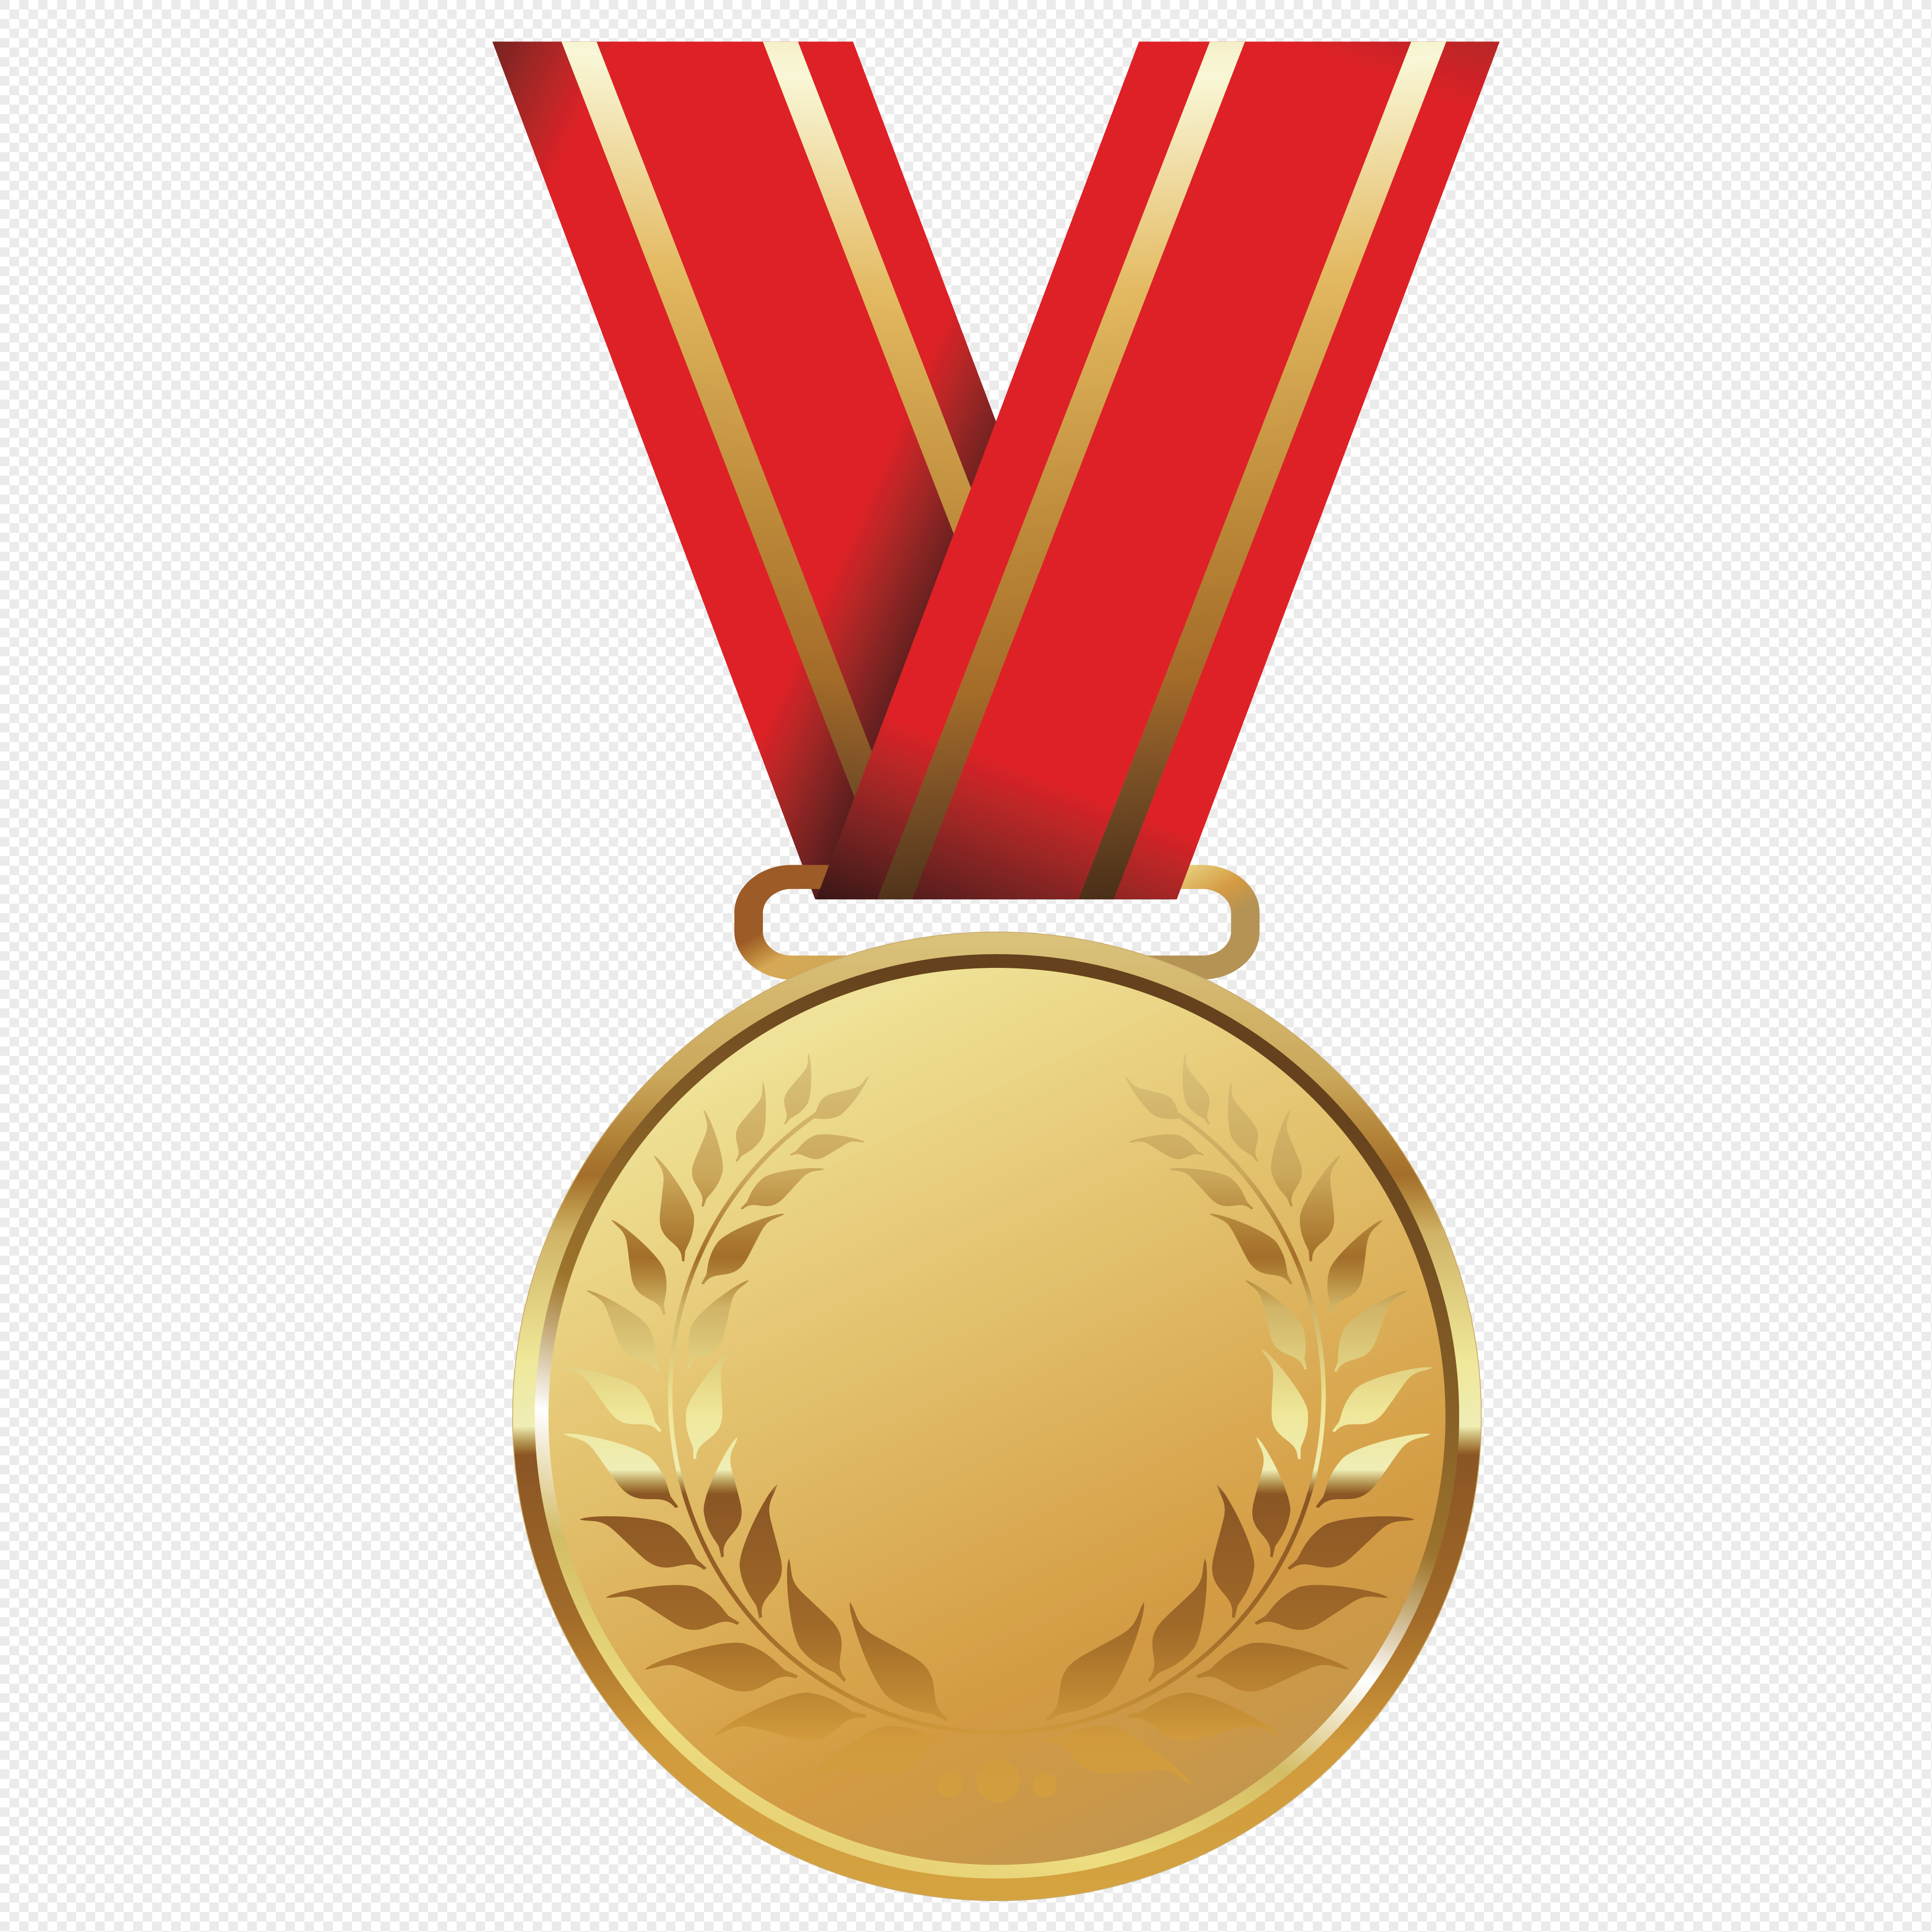 4062x4062 Champion Medals Vector Material Png Image Picture Free Download